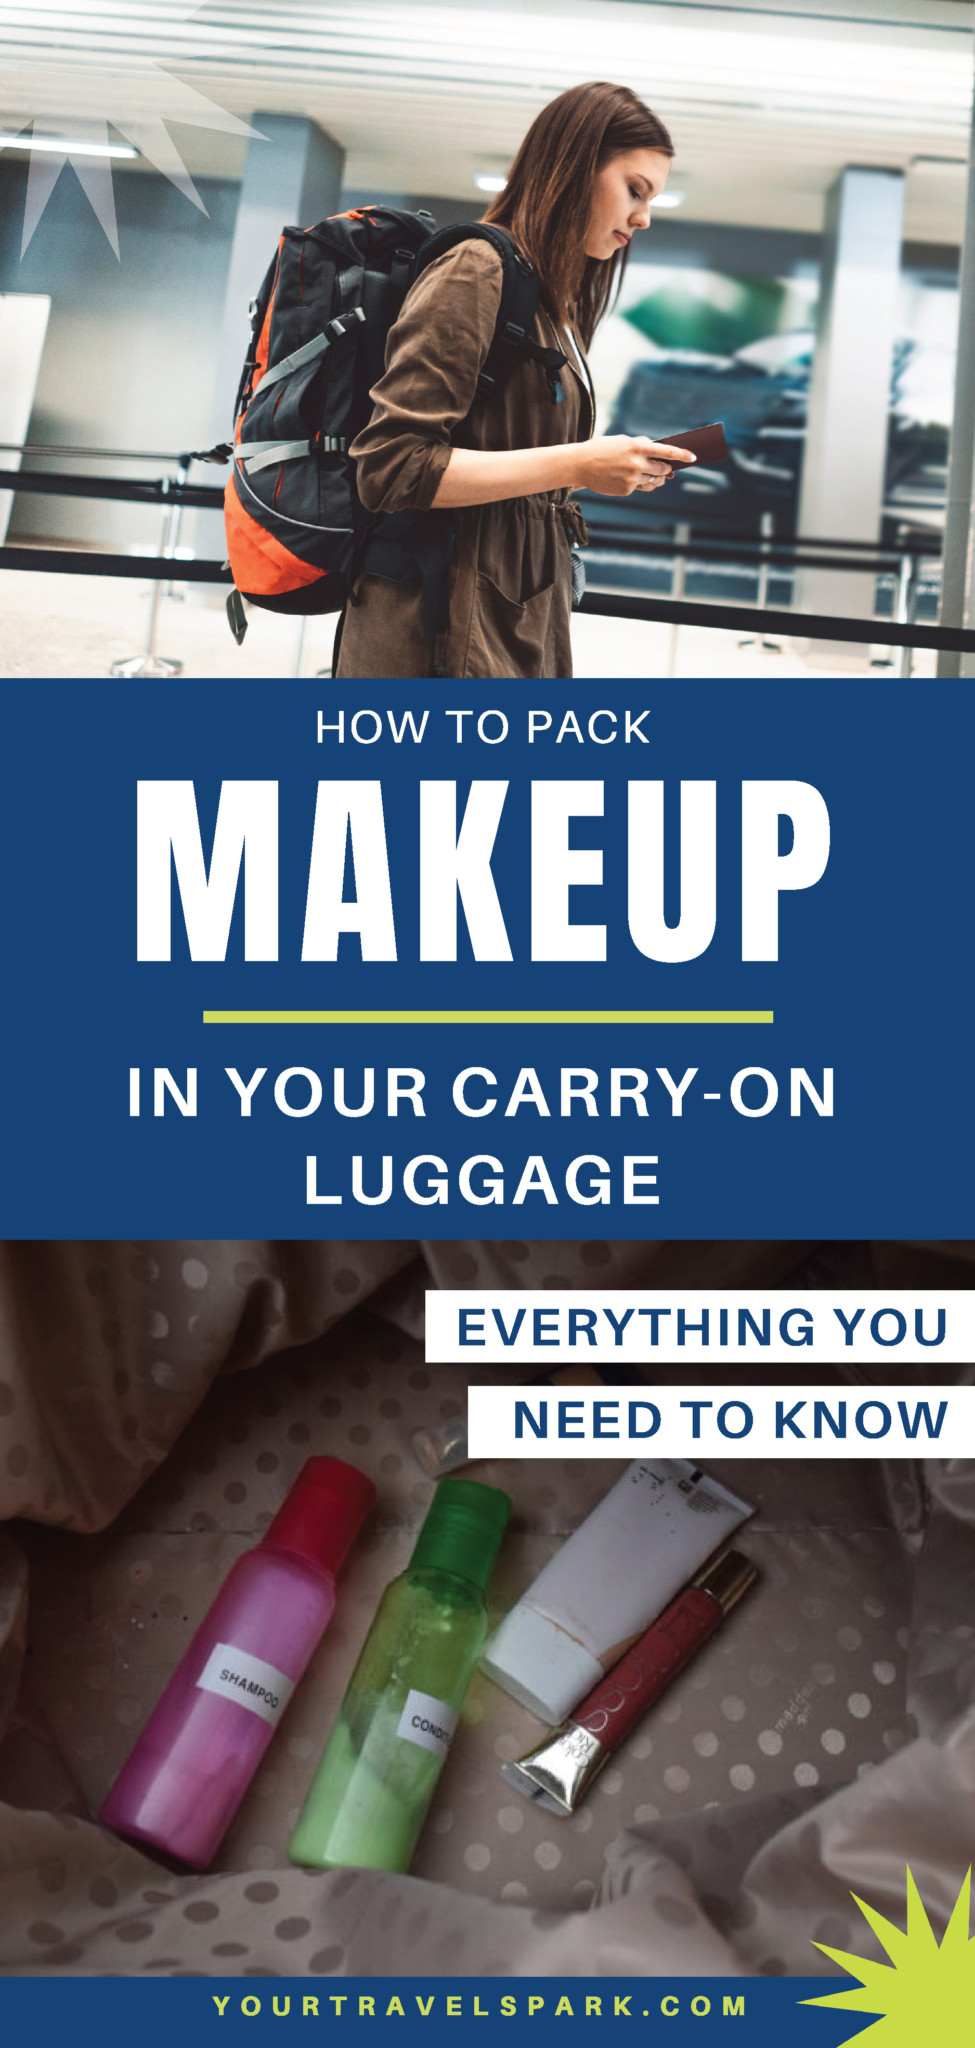 How To Pack Makeup In Carry On Luggage 2019 Tsa Travel